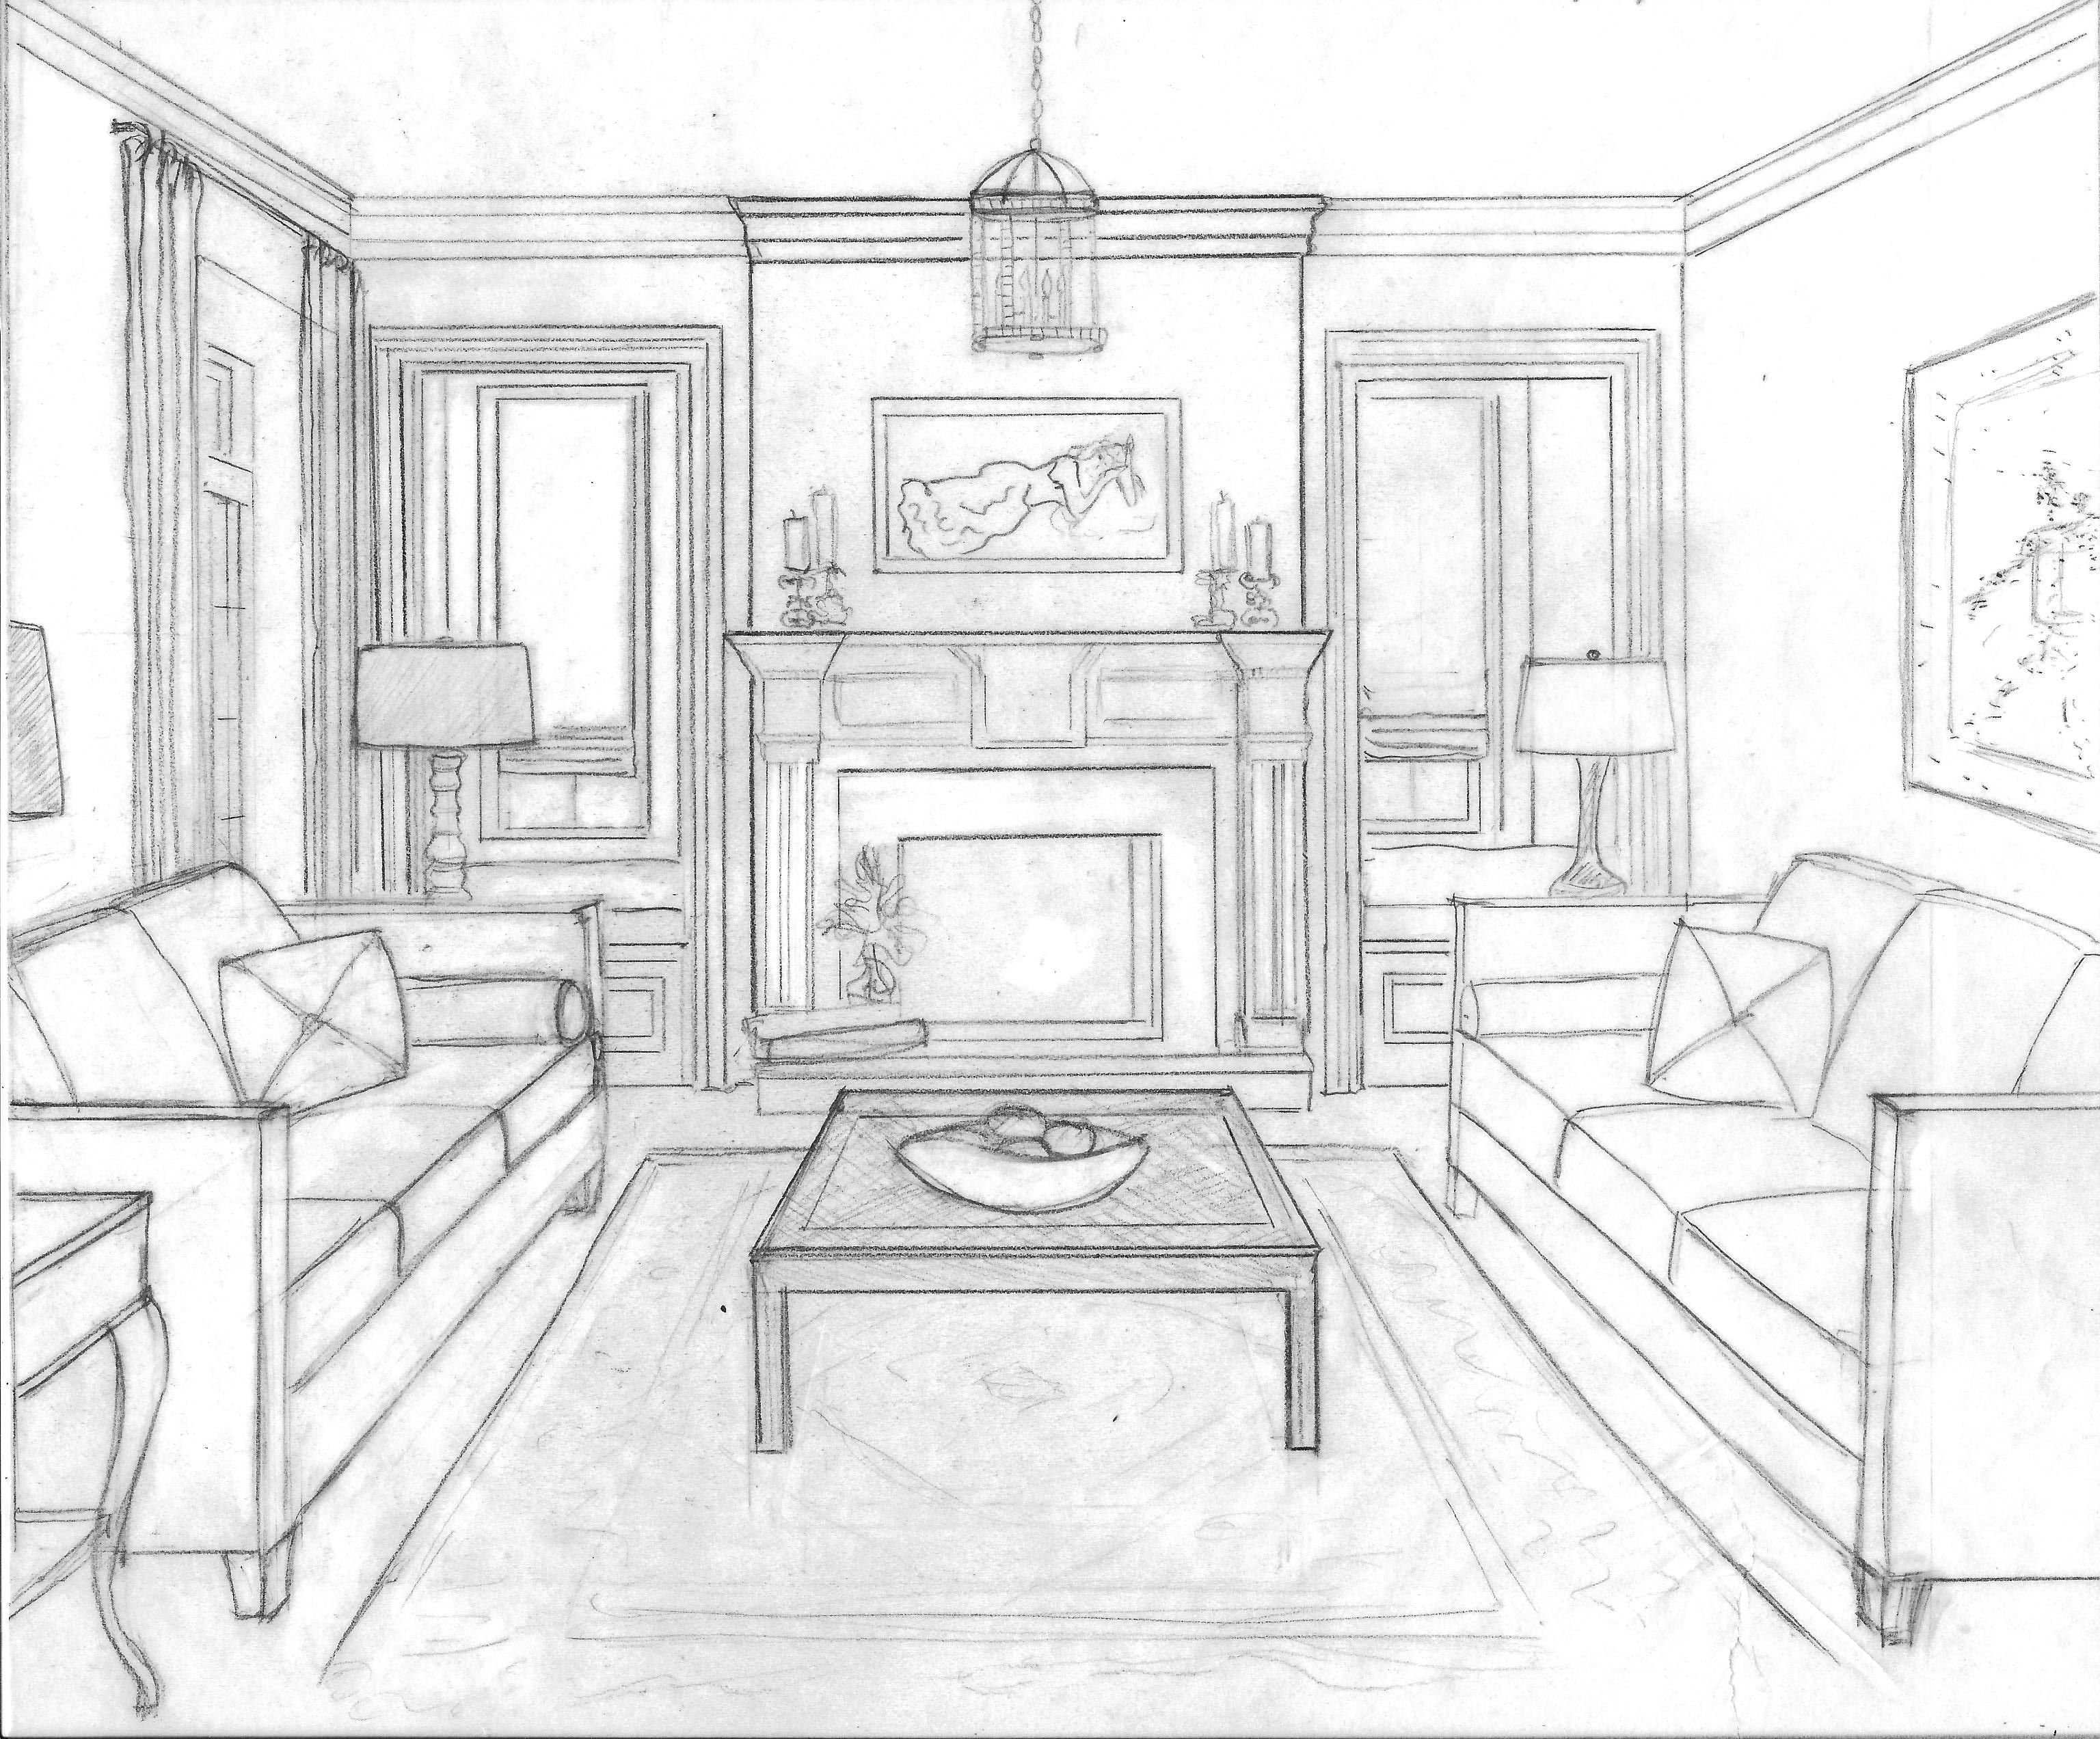 Concept drawing waterlily interiors perspective room - One point perspective drawing living room ...